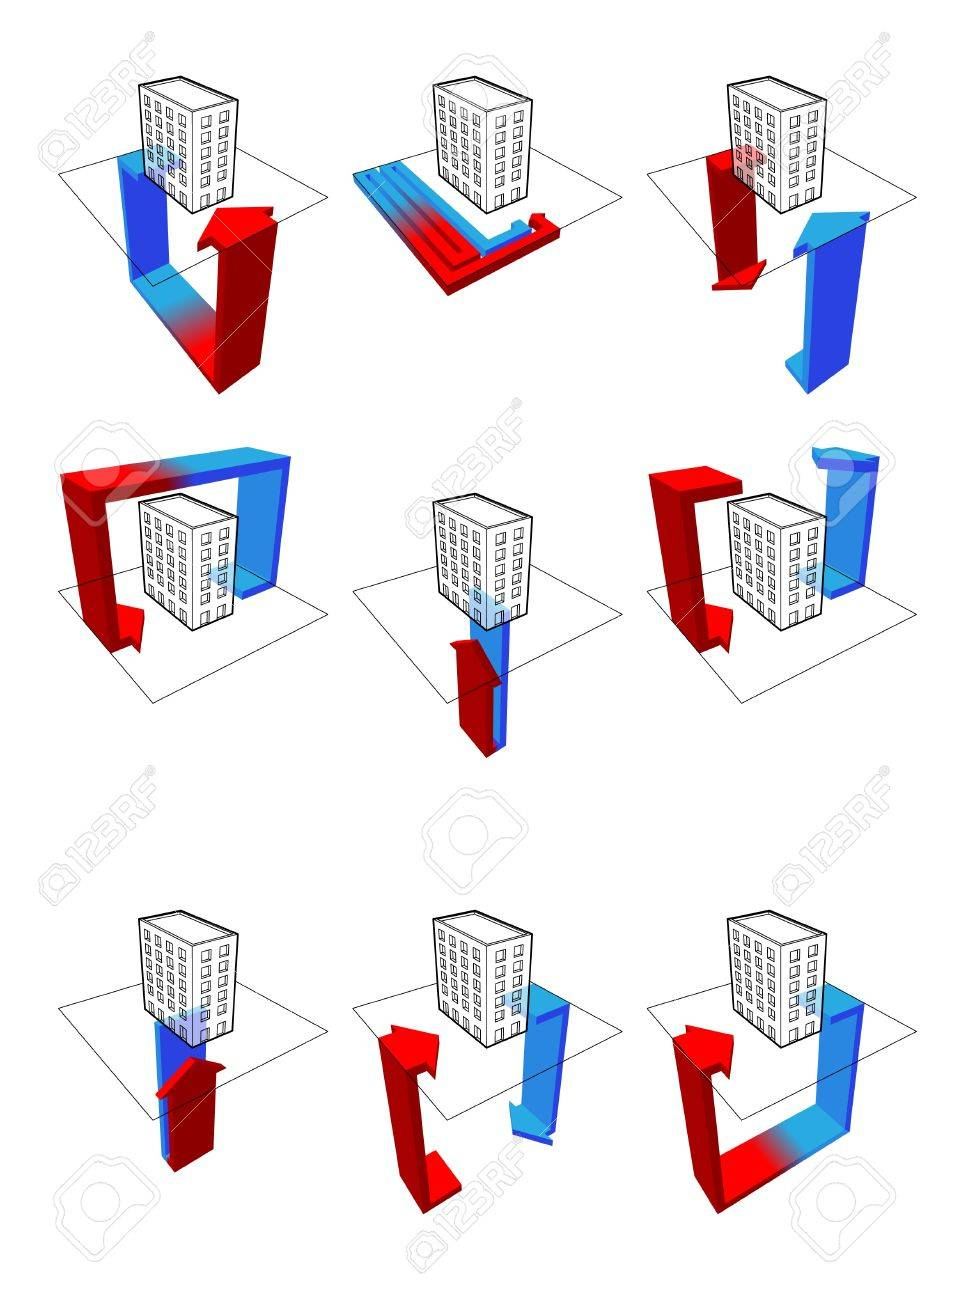 hight resolution of collection of nine heat pump diagrams on example of a apartment house showing possibilities of